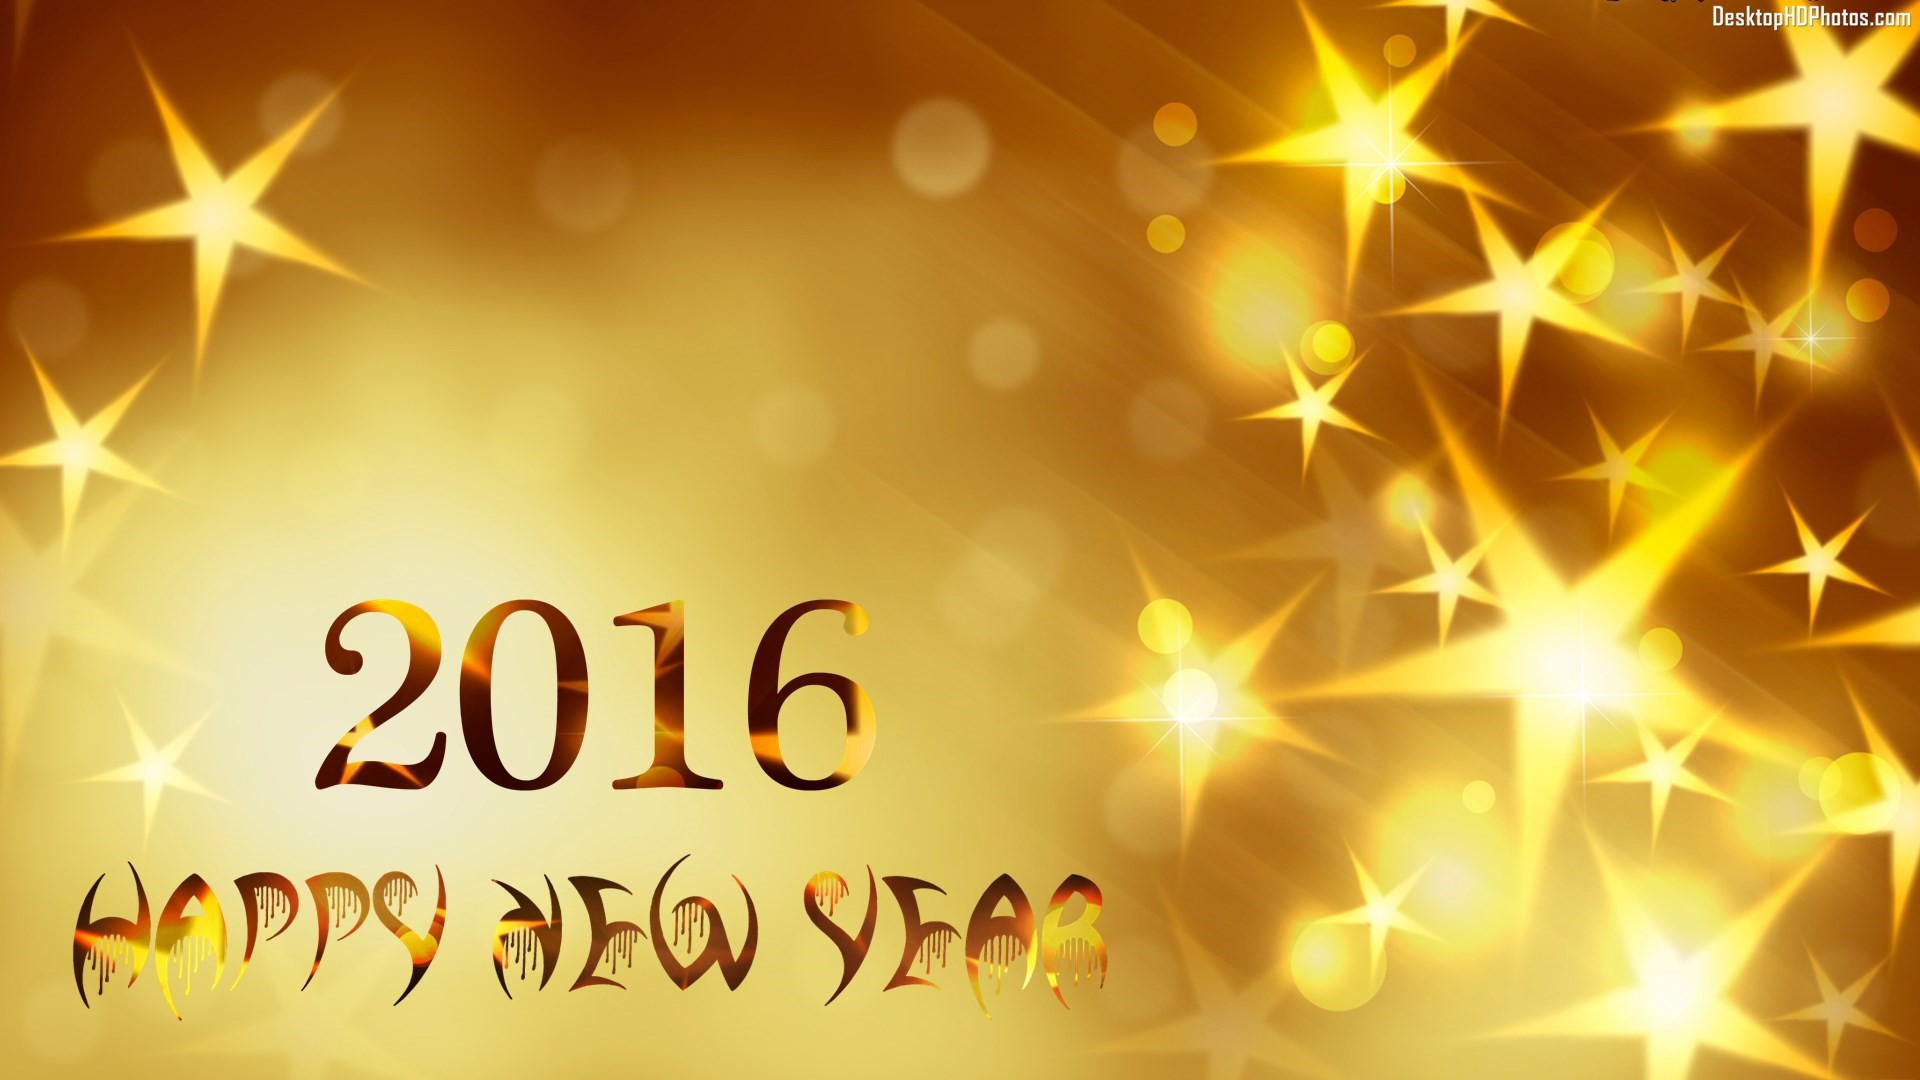 happy new year 2016 hd wallpapers images free download science and technology